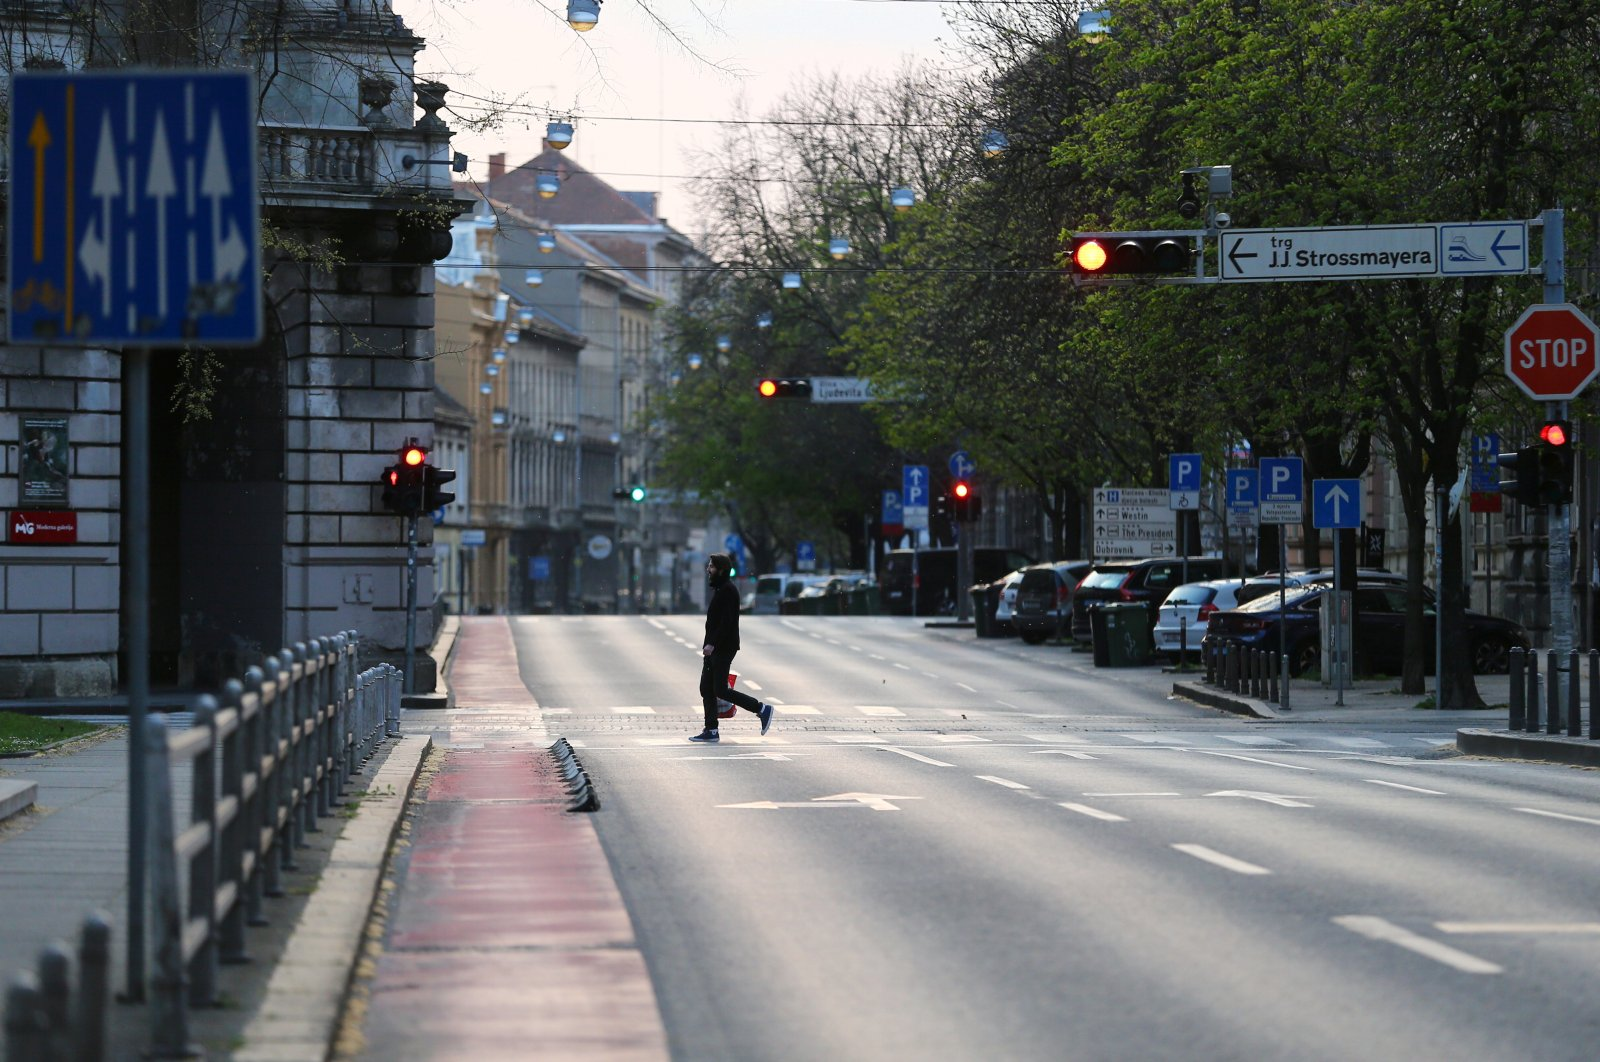 A man crosses a street in Zagreb, Croatia, where authorities have been stepping up measures to fight the coronavirus outbreak, March 21, 2020. (Reuters Photo)